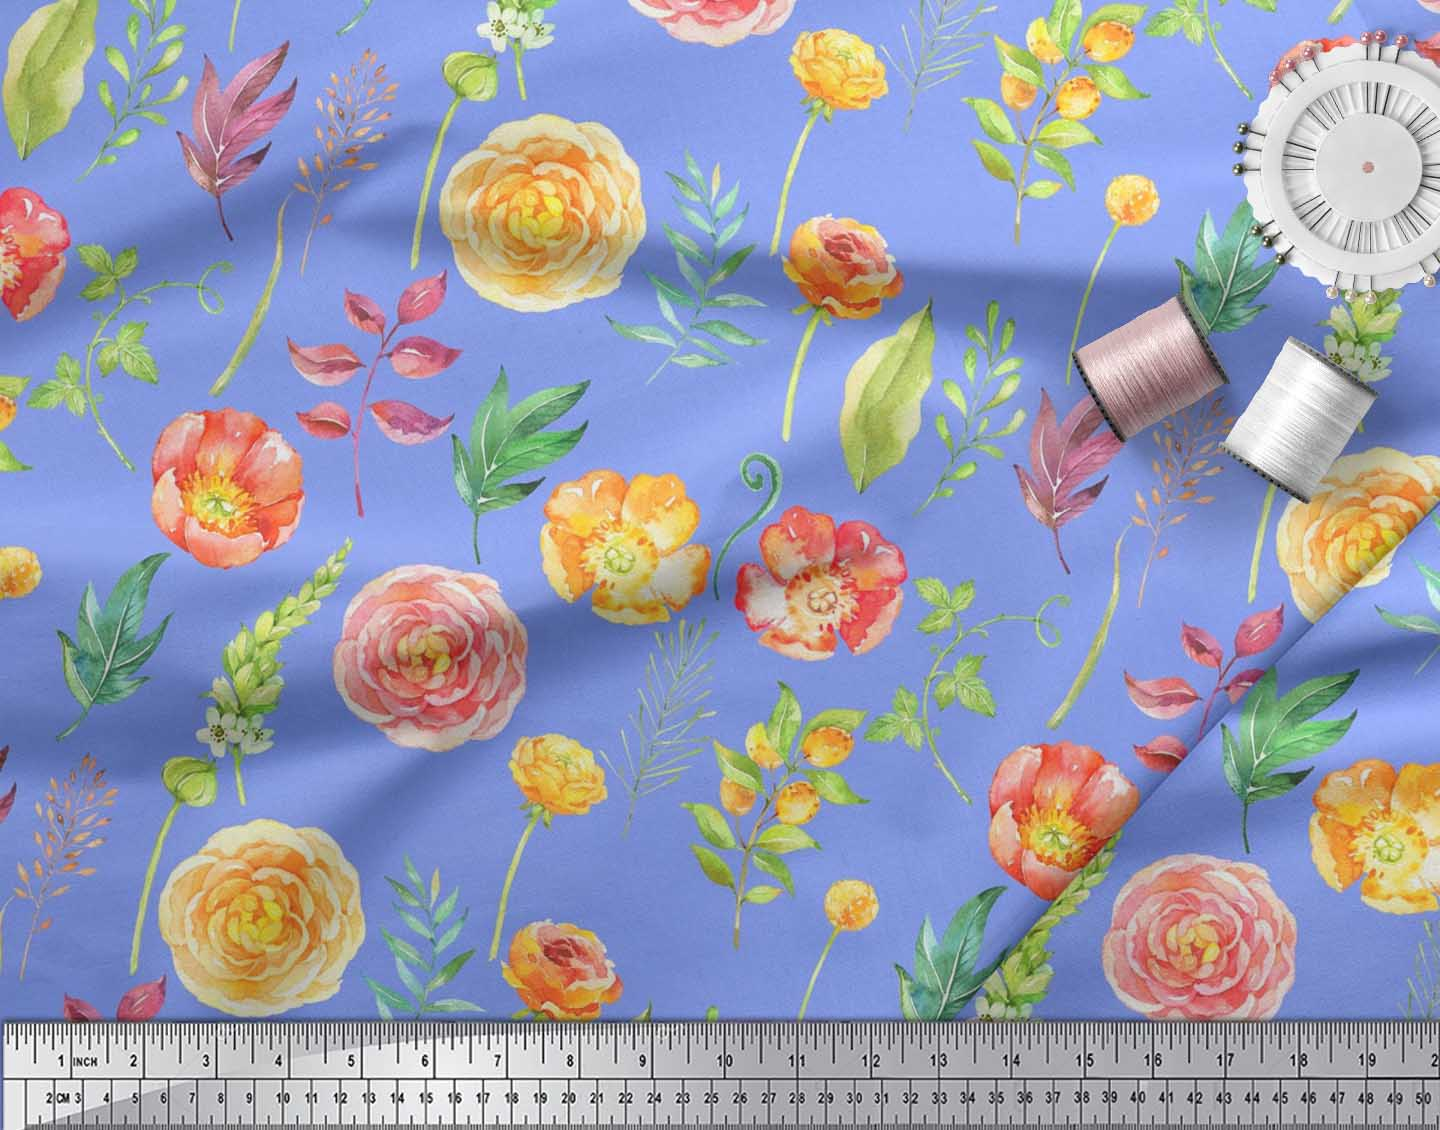 Soimoi-Cotton-Poplin-Fabric-Leaves-amp-Begonia-Floral-Decor-Fabric-uZy thumbnail 3